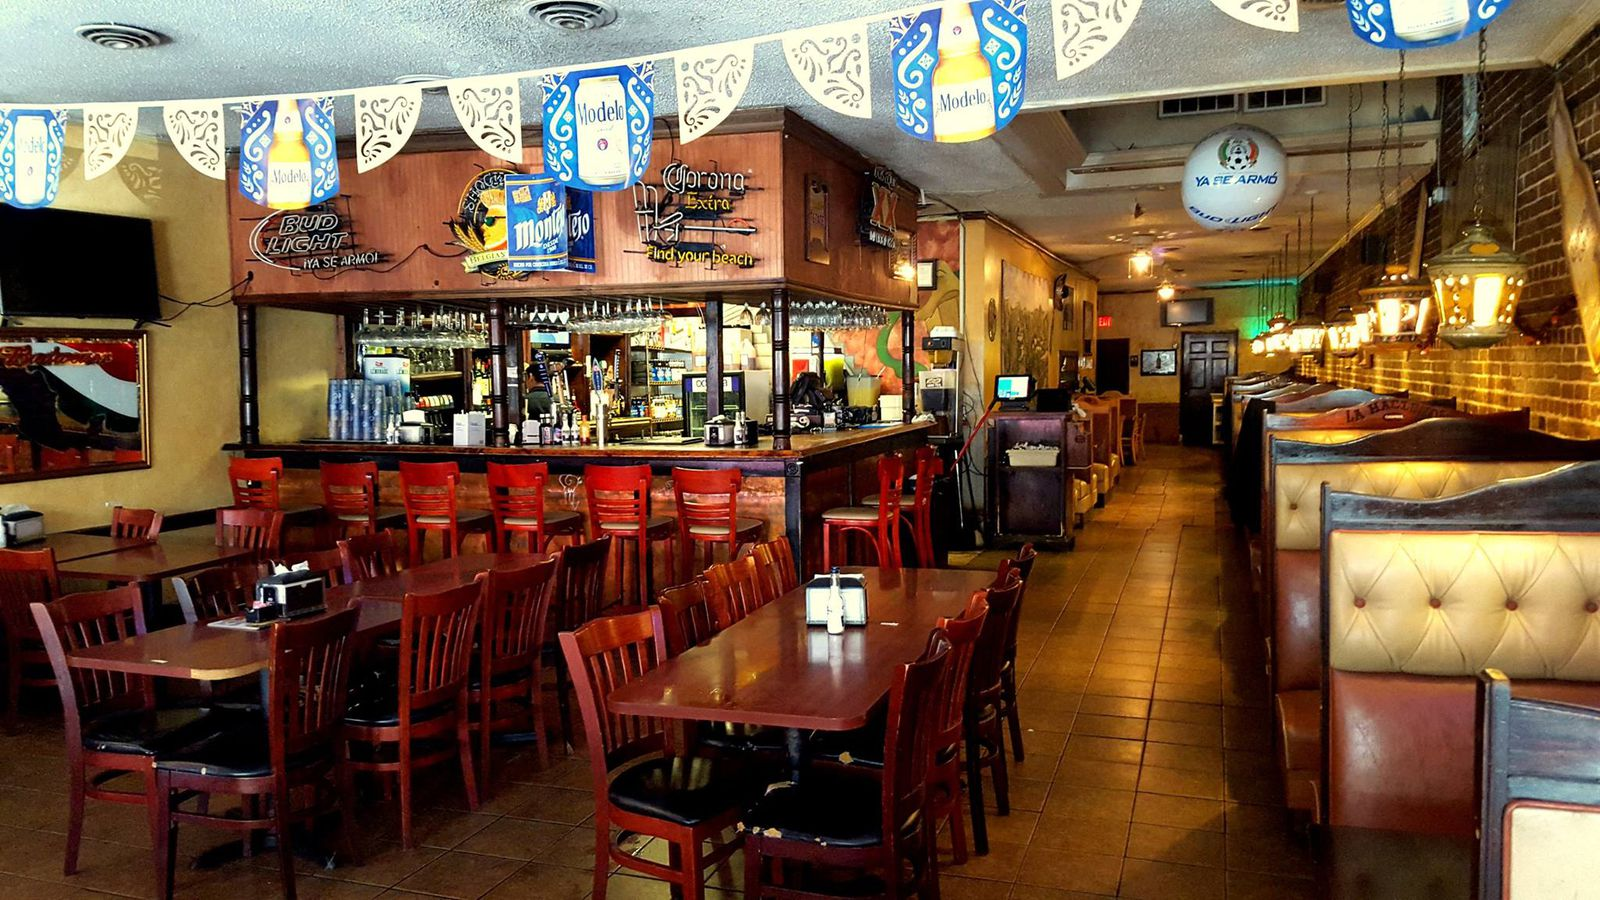 La Hacienda Mexican Restaurant For Sale On King Street